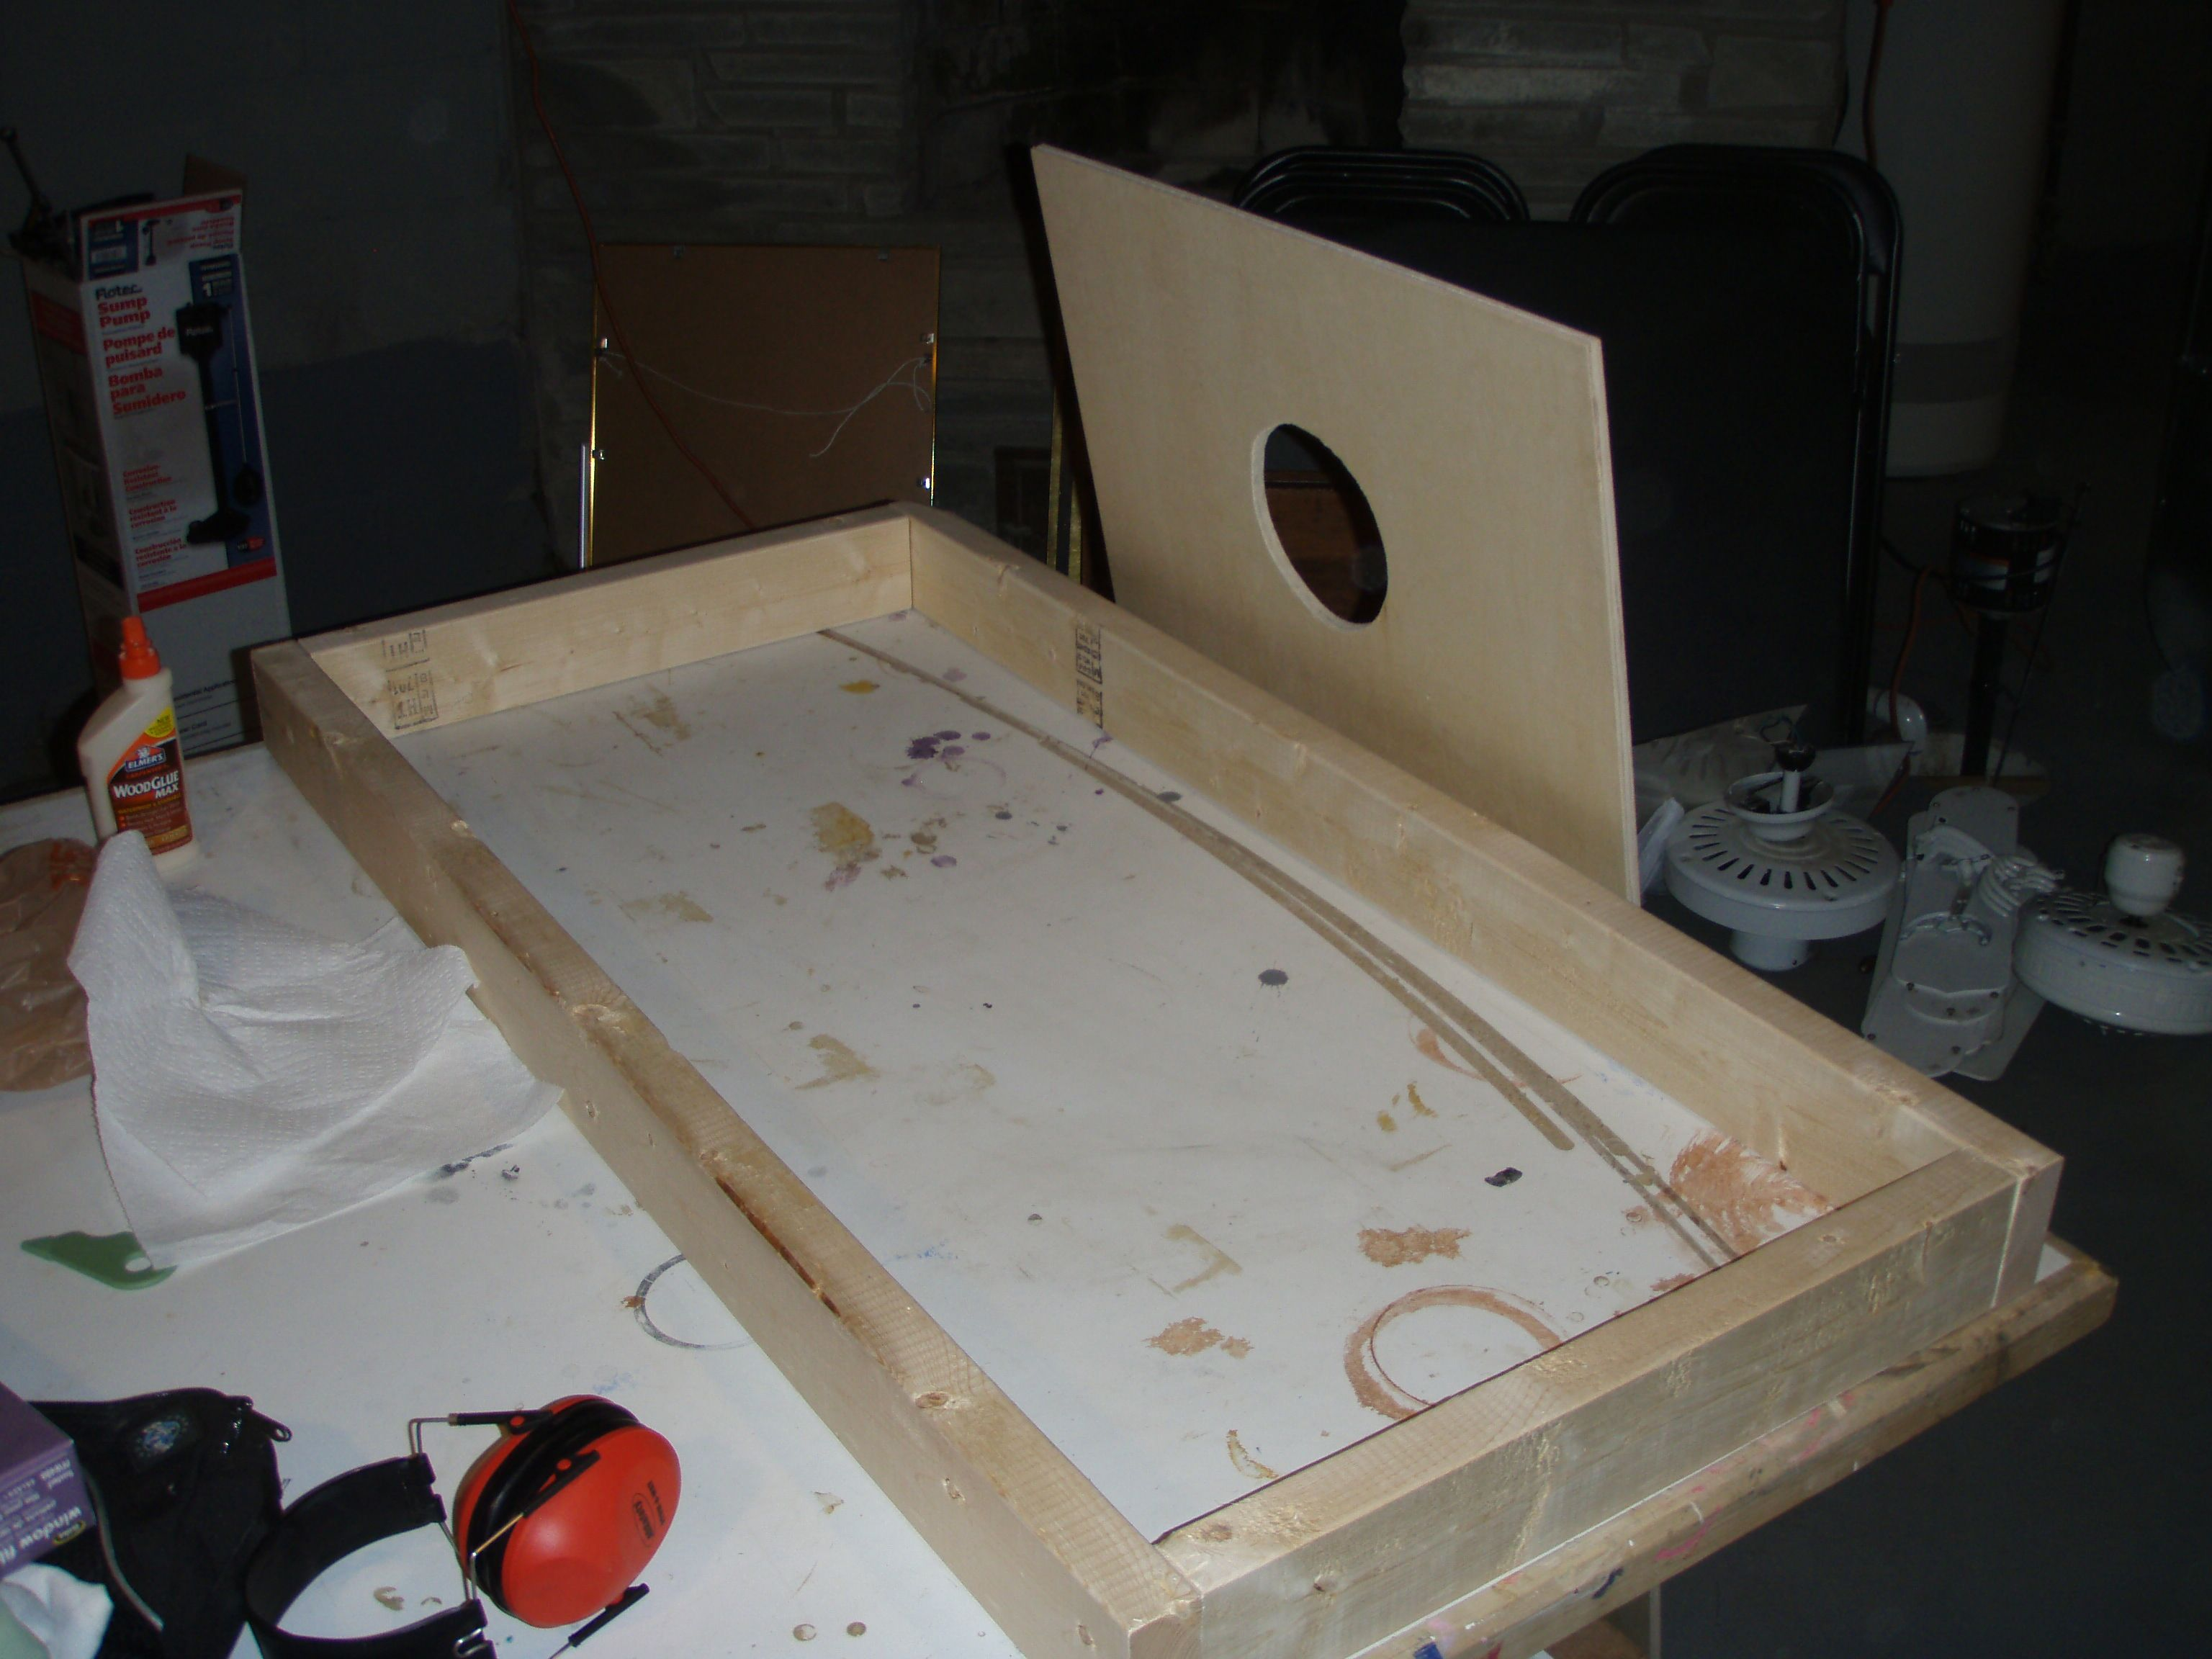 Cornhole frame - How to make your own Cornhole board